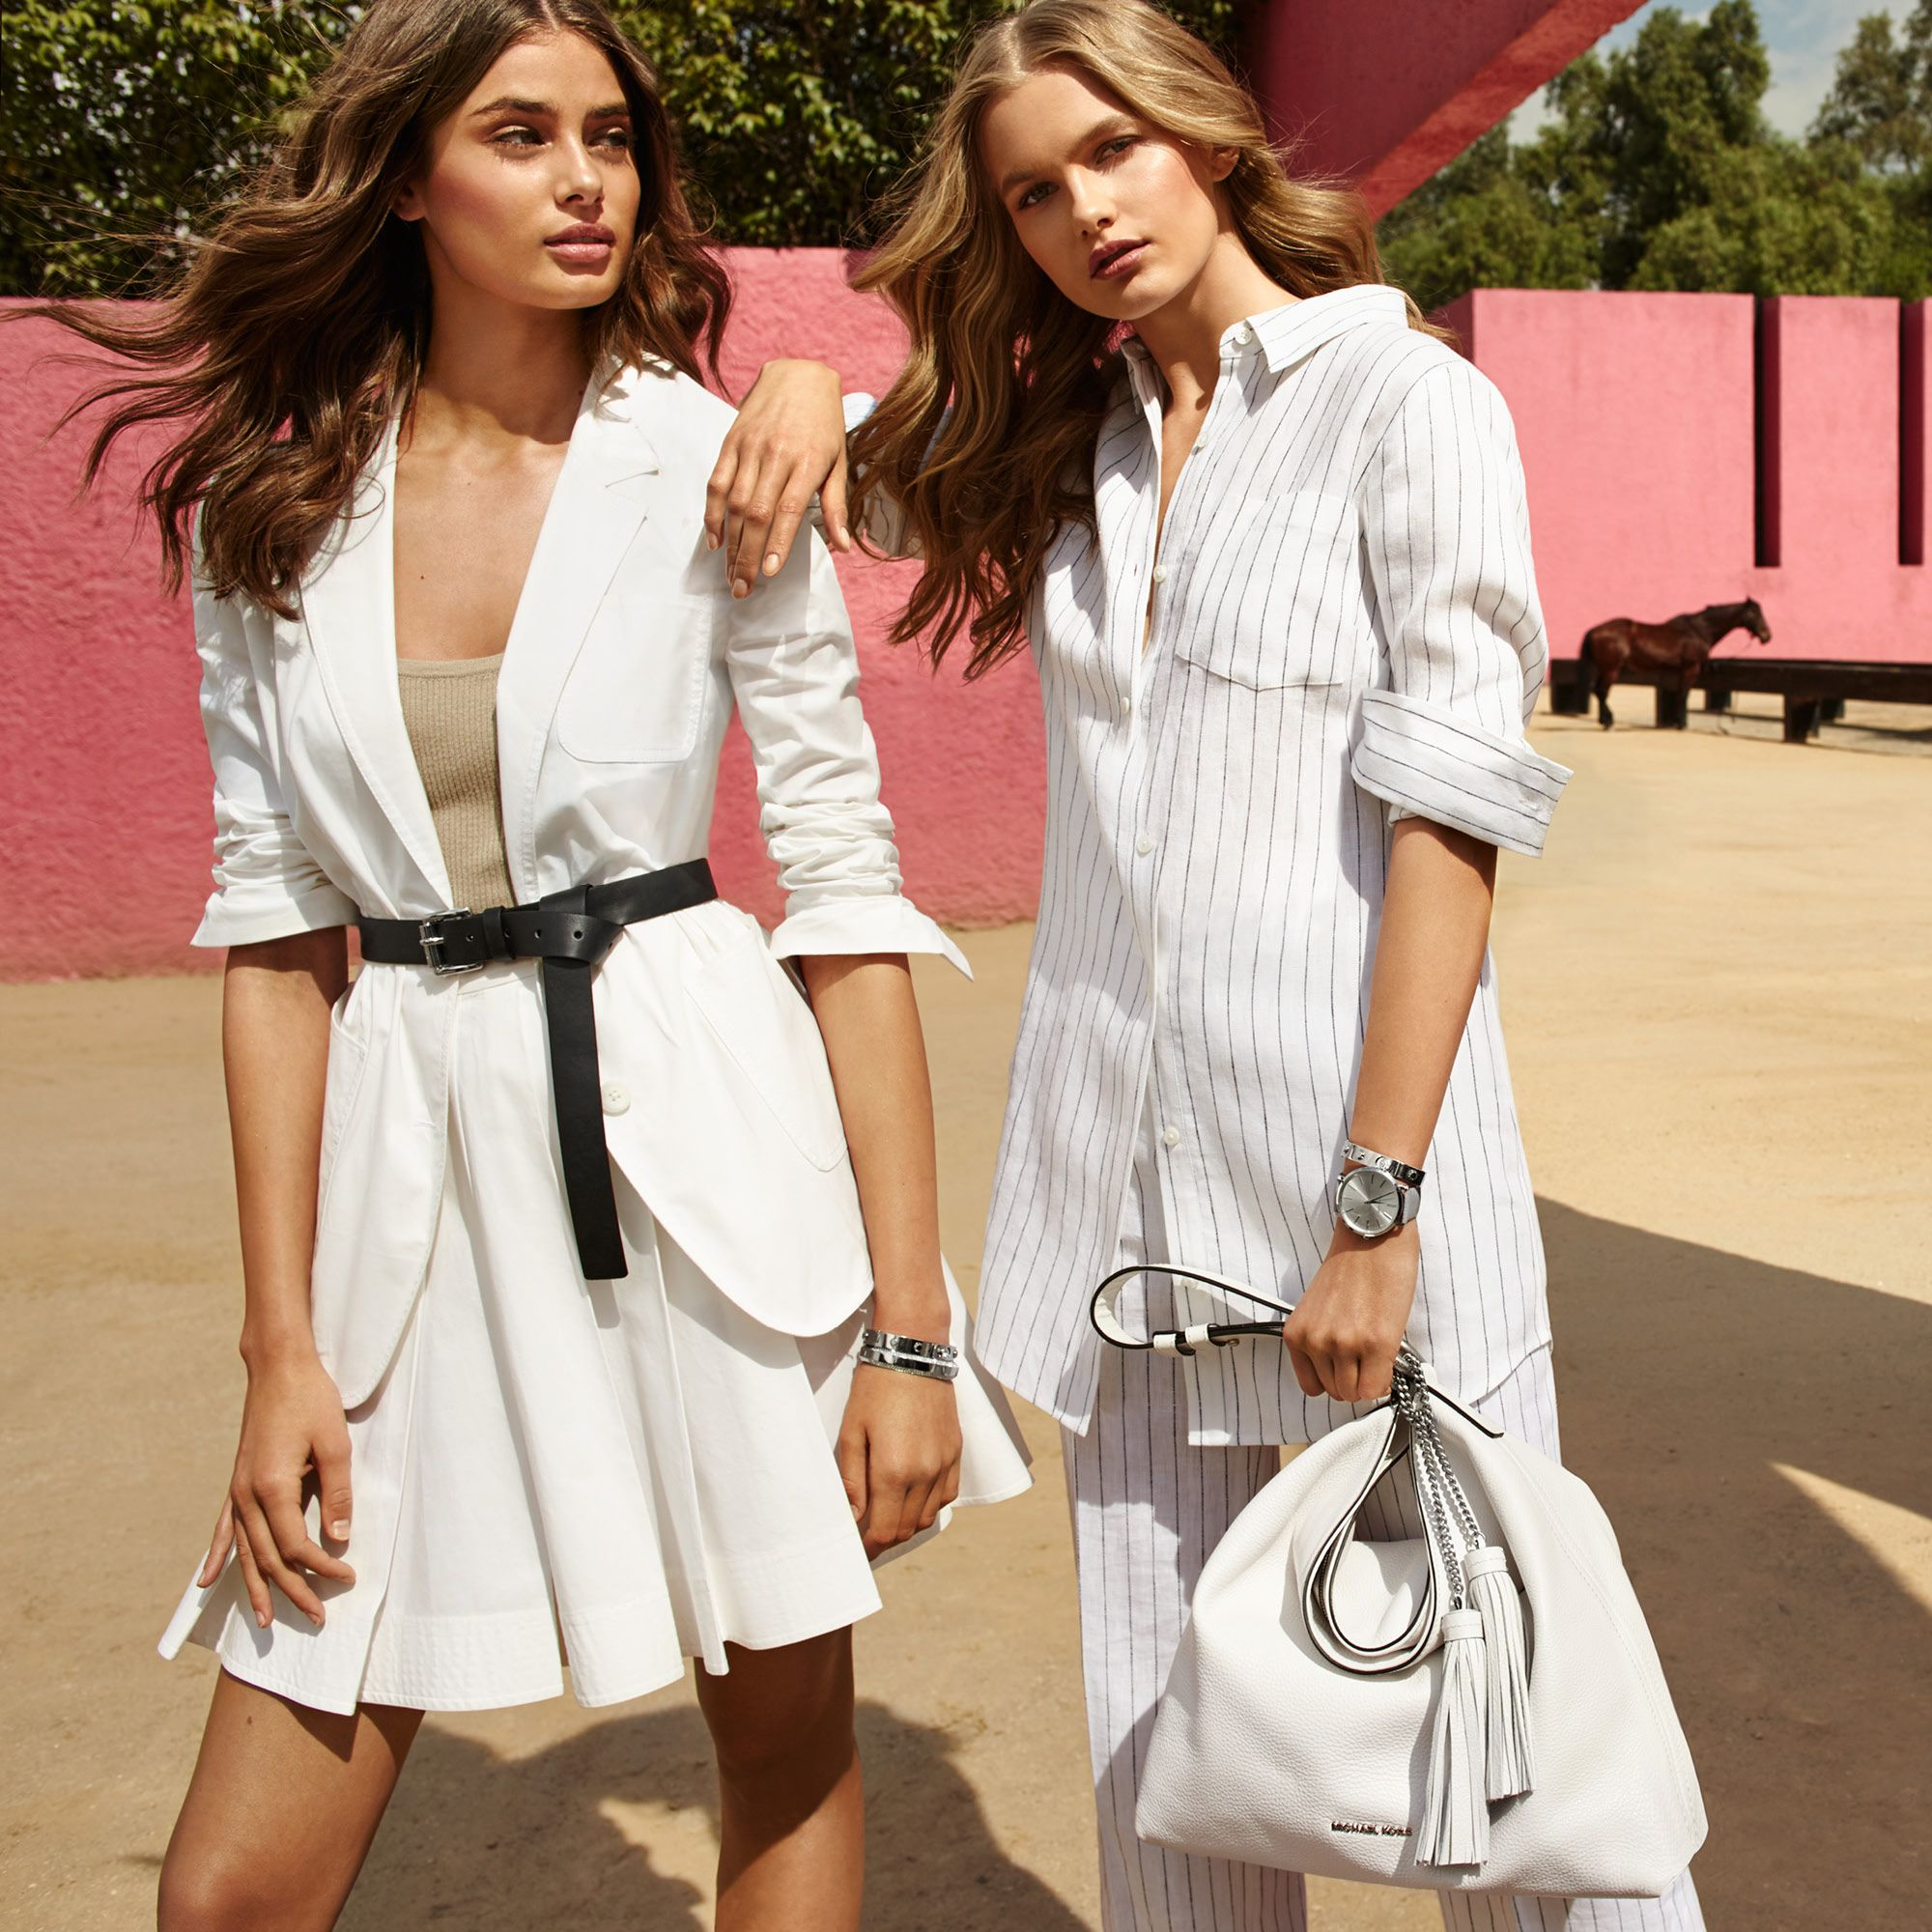 Master standout style with chic, crisp white separates ...